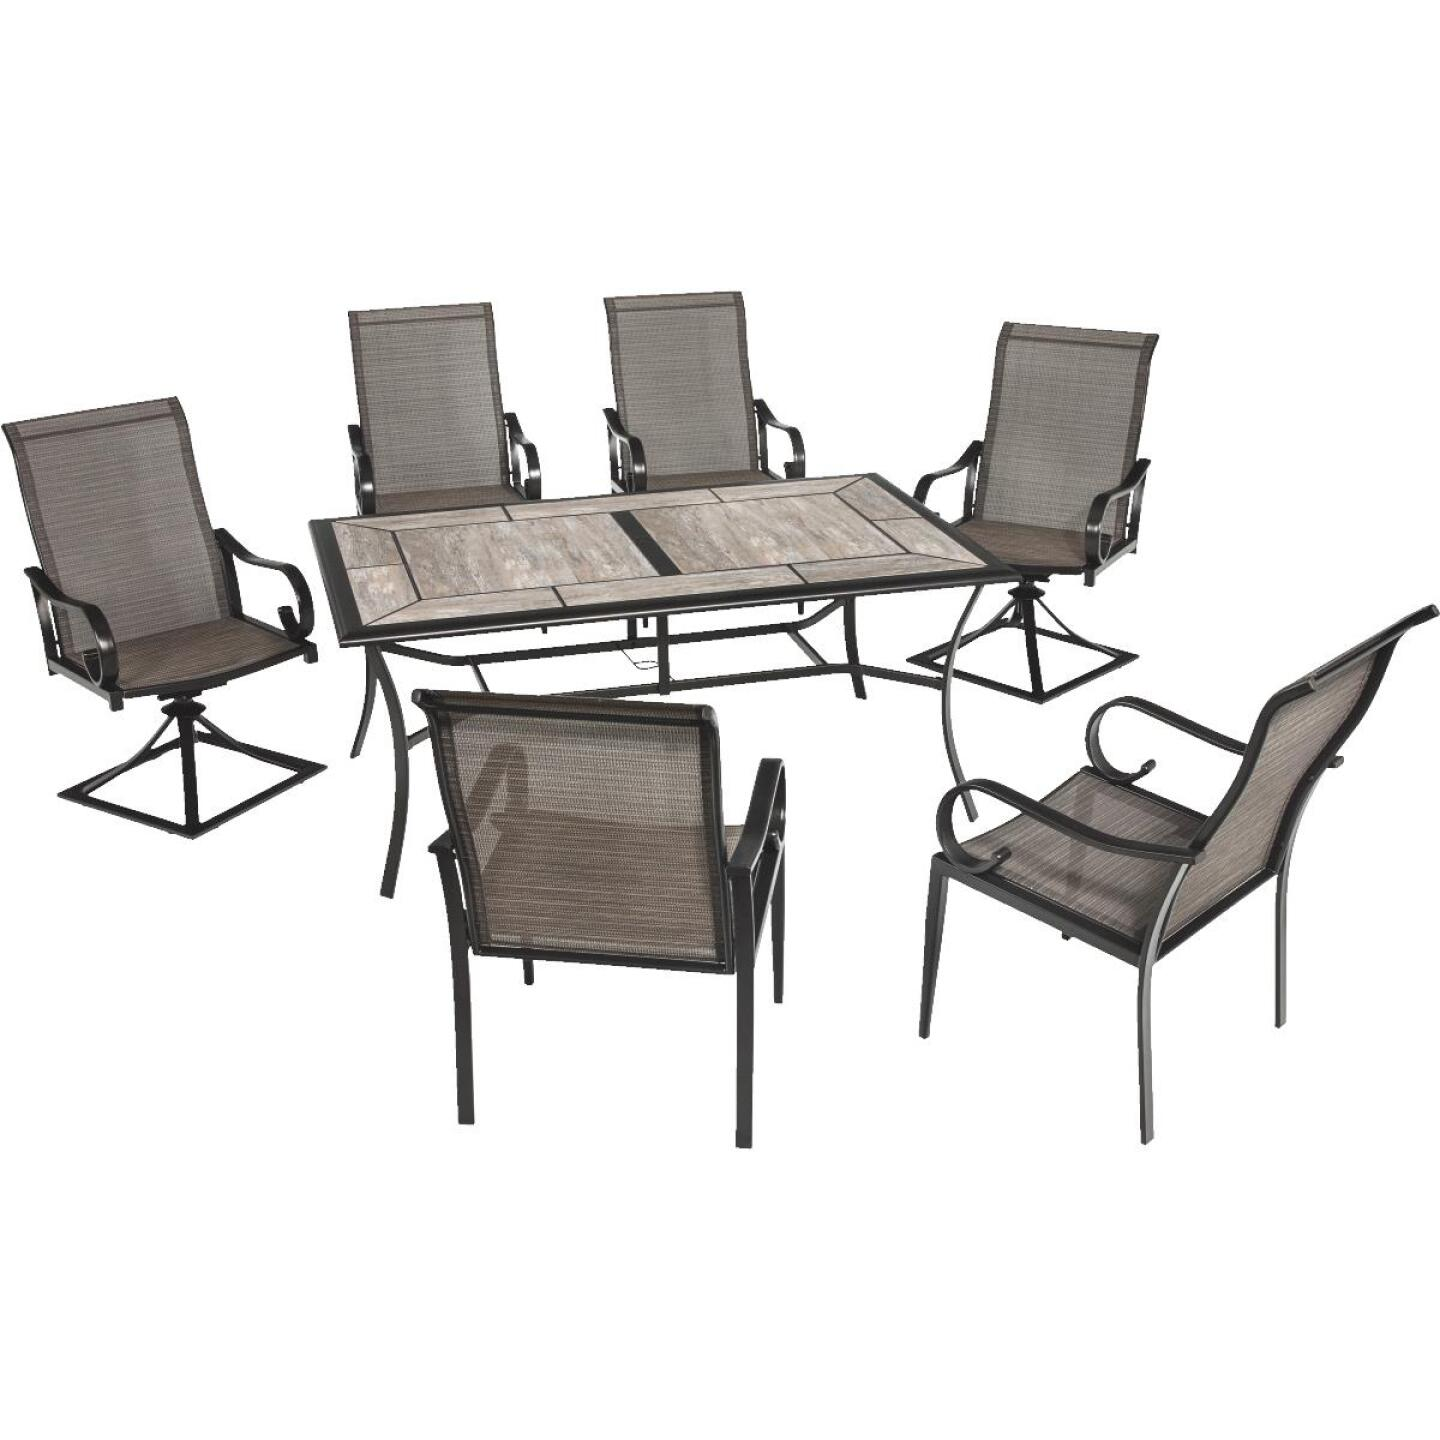 Outdoor Expressions Berkshire 7-Piece Dining Set Image 252